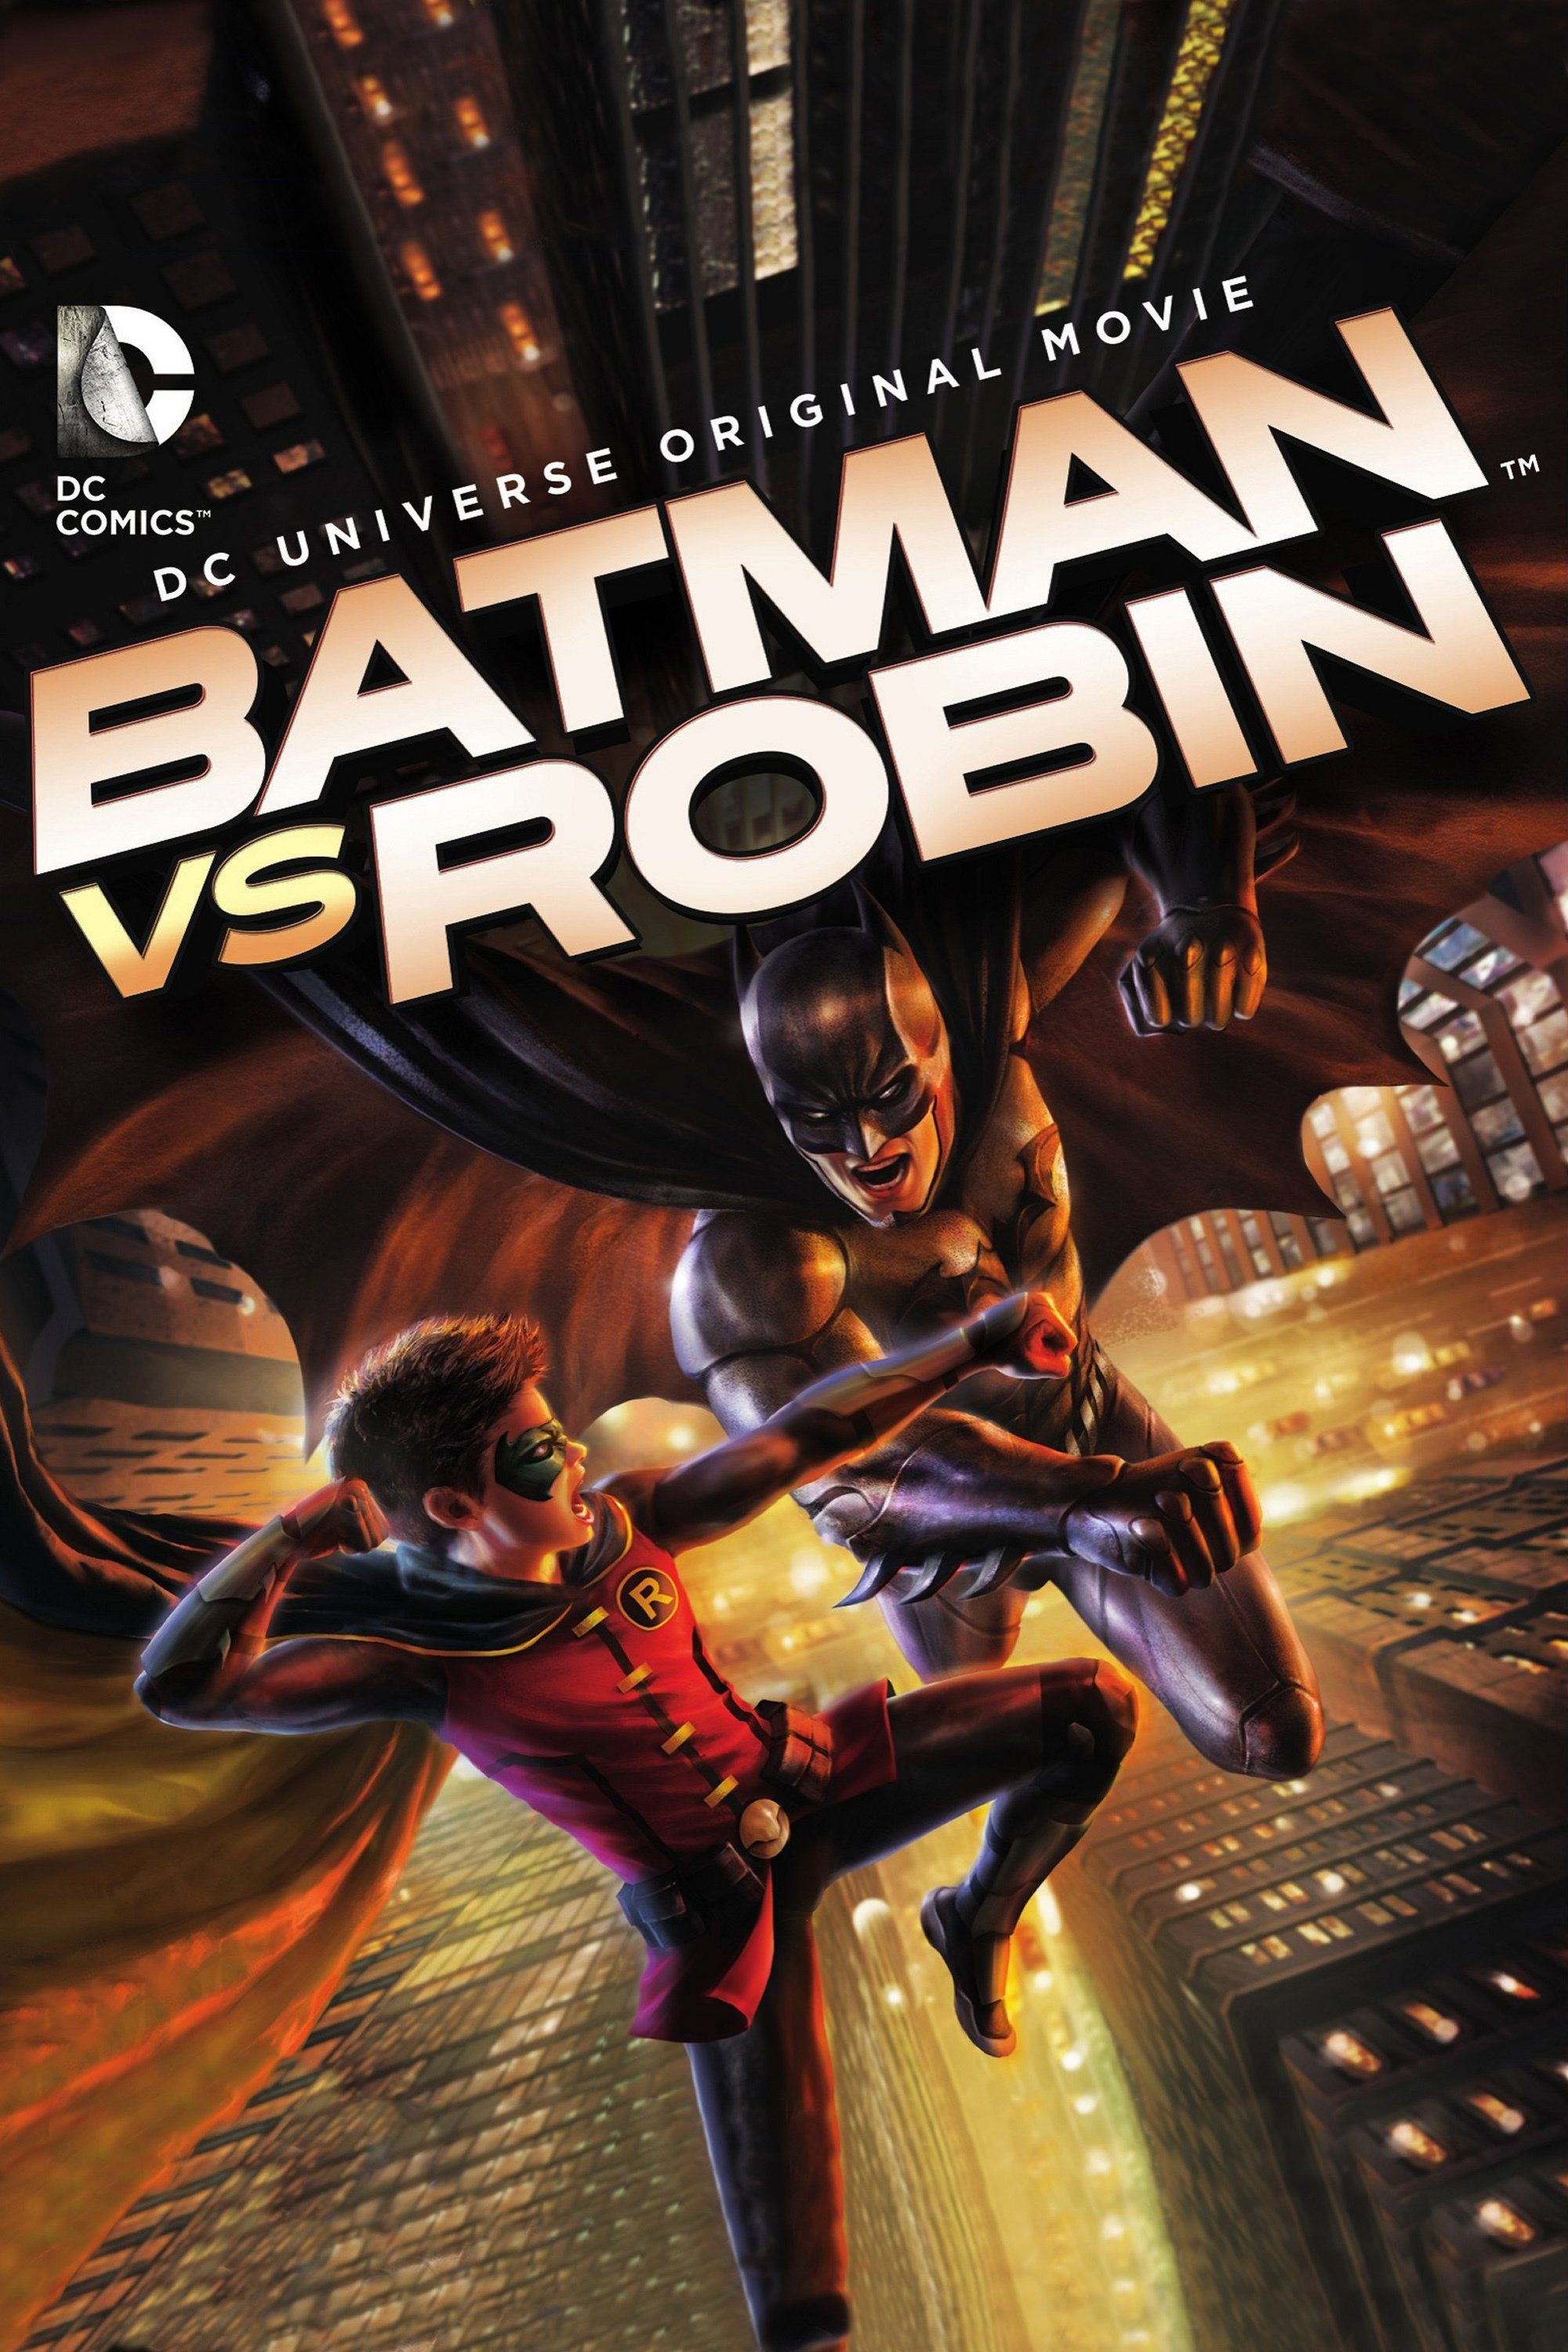 Batman Vs Robin I Loved This It Was Cool How They Combined